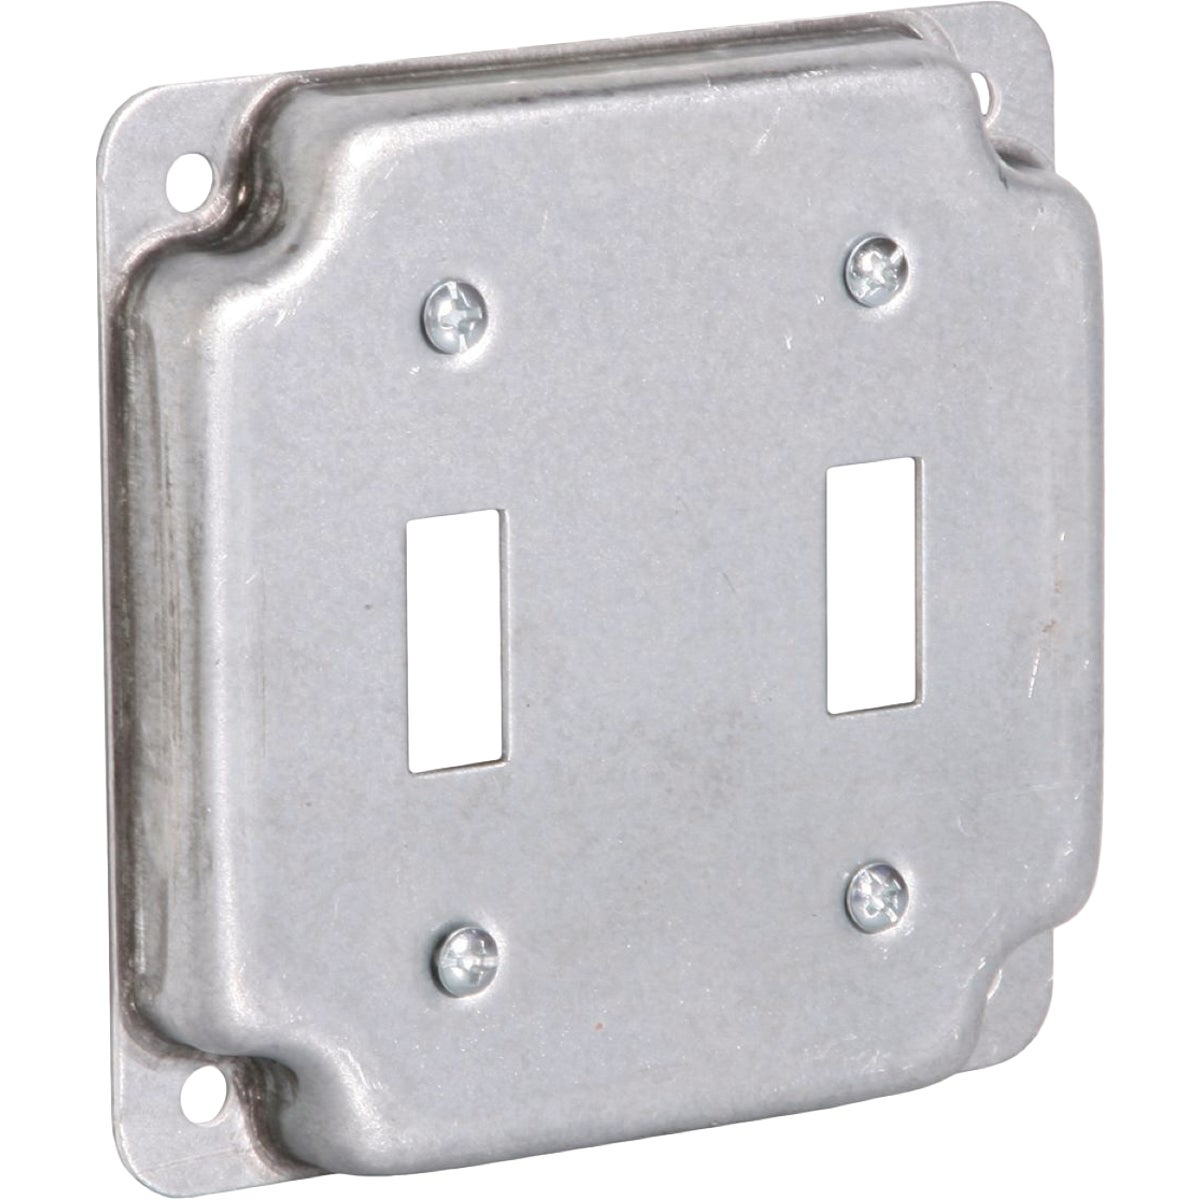 "4"" SQ 2-SWITCH BOX COVER"